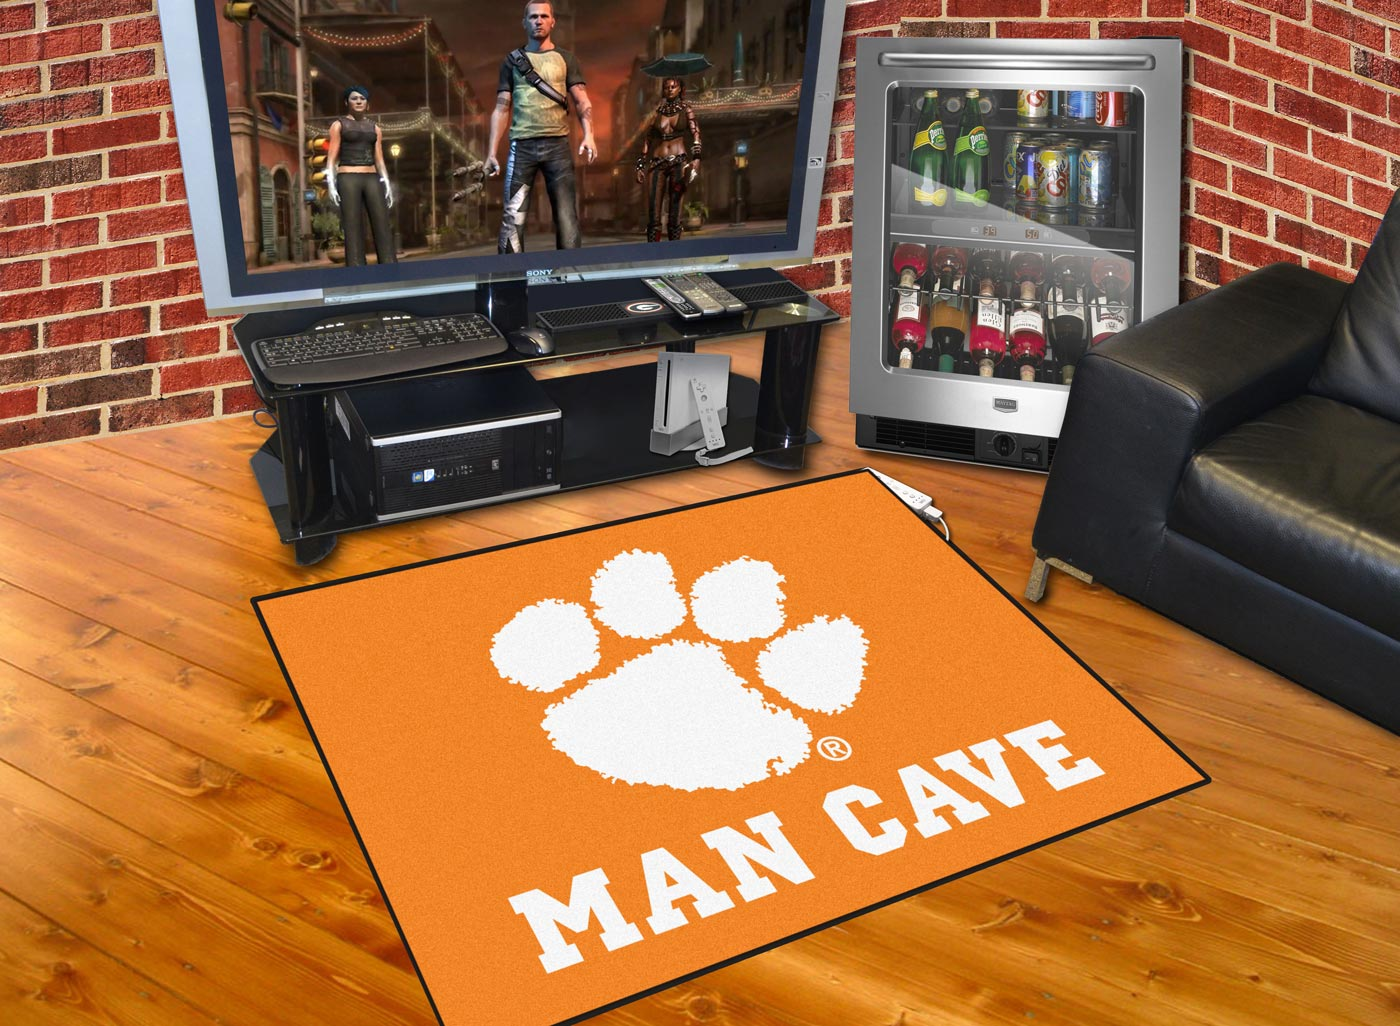 Man Cave Rugs : Clemson tigers man cave all star rug